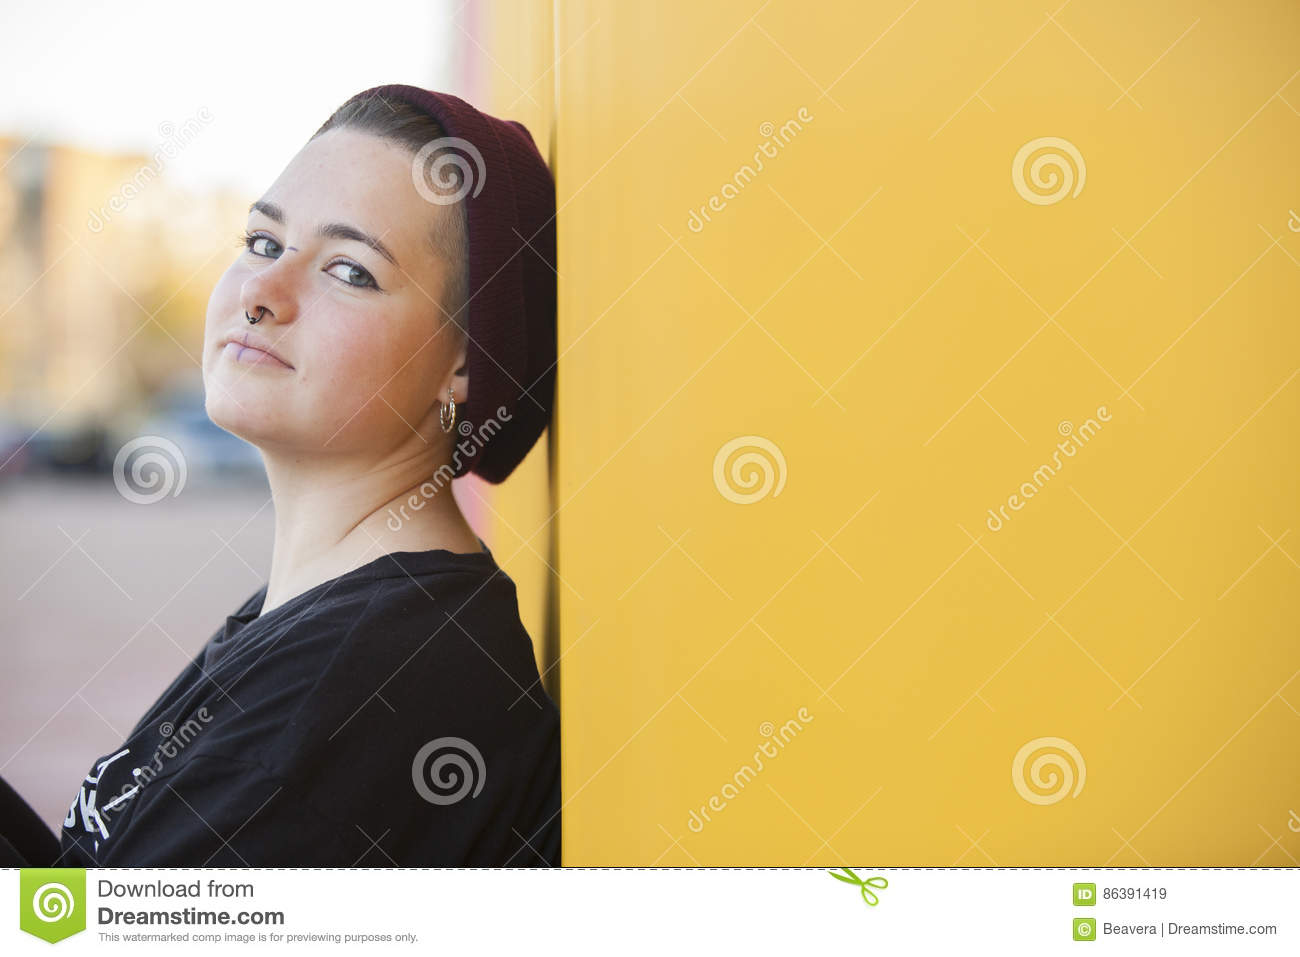 Portrait of a sad teen gay woman on a yellow wall